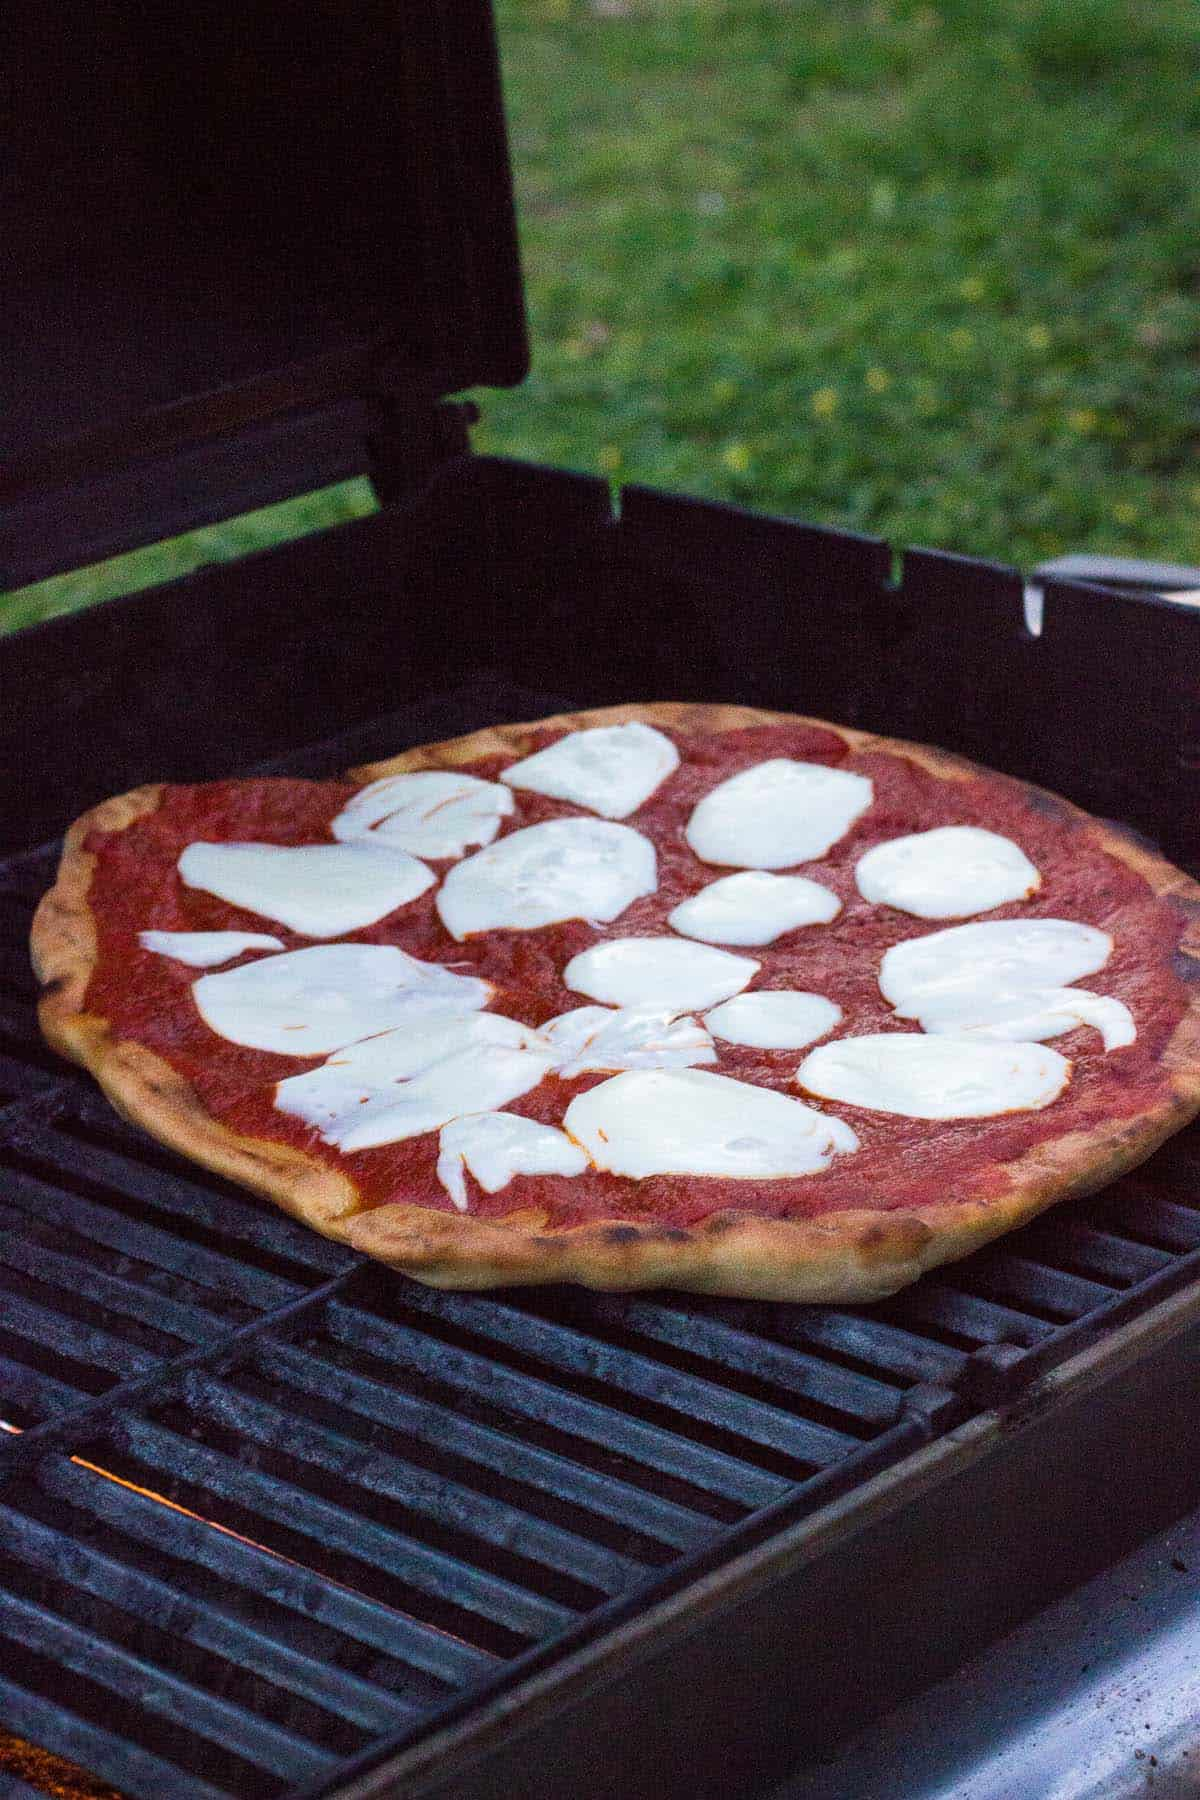 Pizza on the grill with sauce and melted mozzarella cheese.